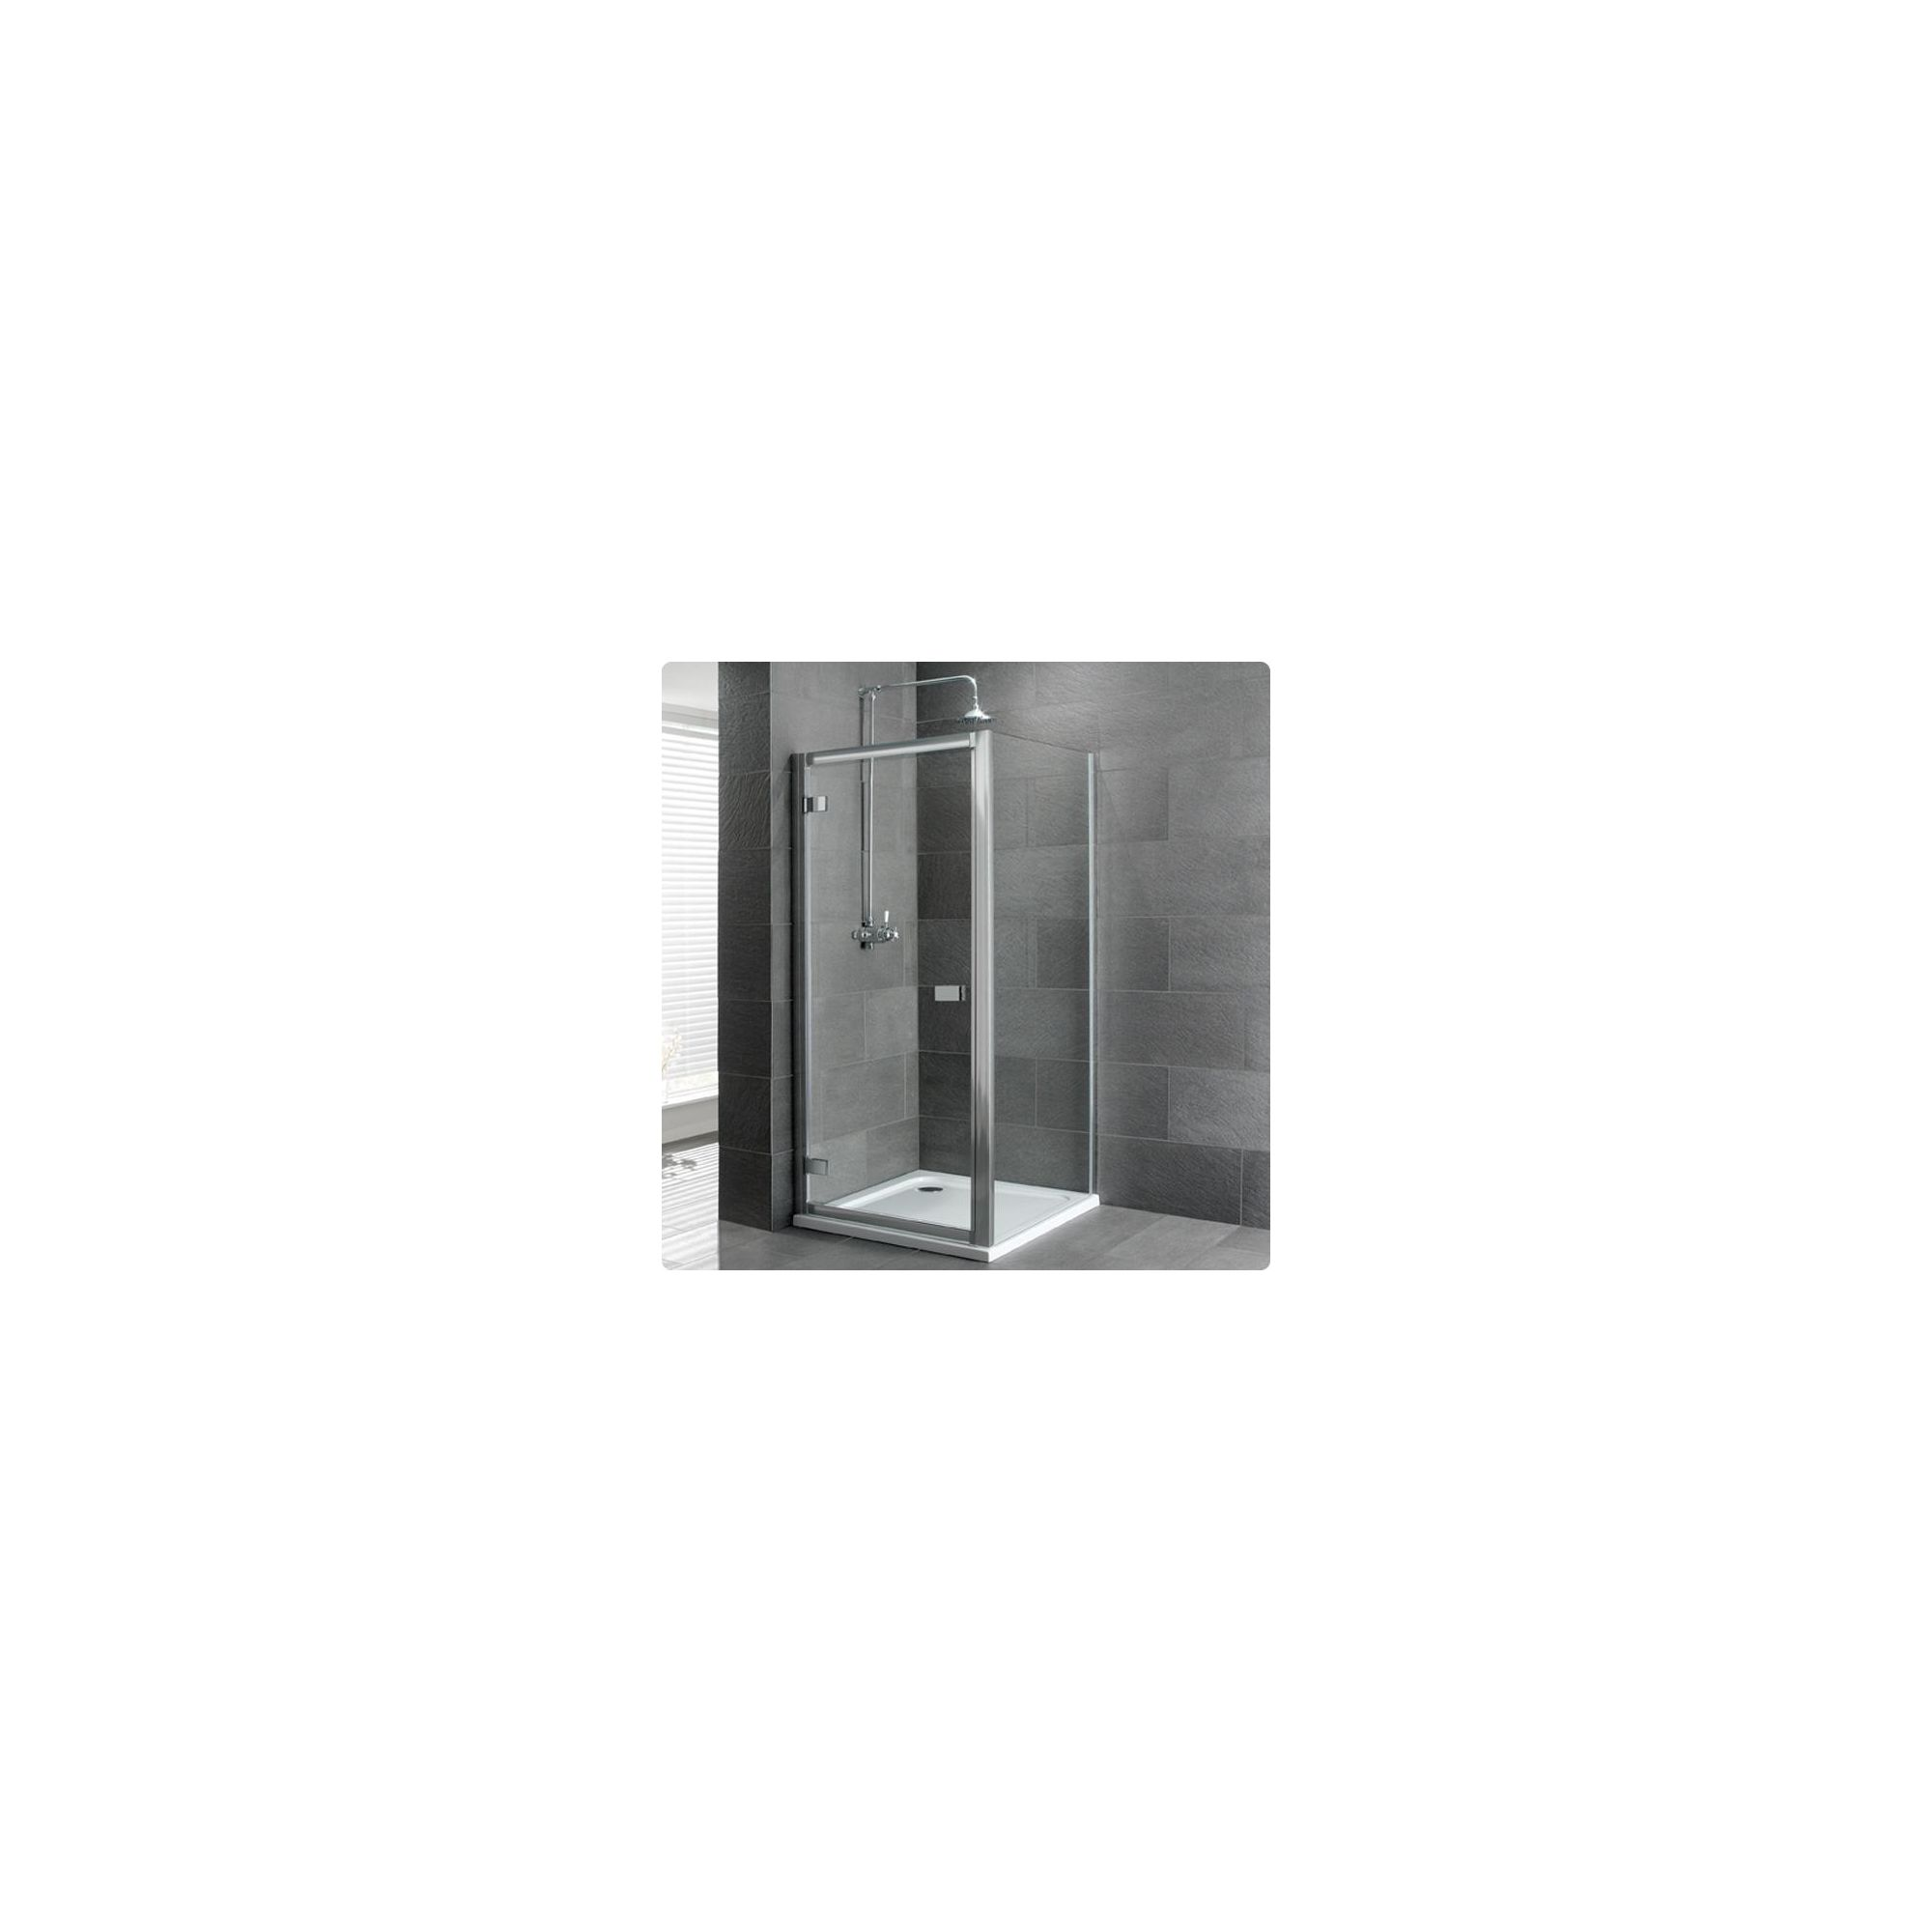 Duchy Select Silver Hinged Door Shower Enclosure, 900mm x 760mm, Standard Tray, 6mm Glass at Tesco Direct